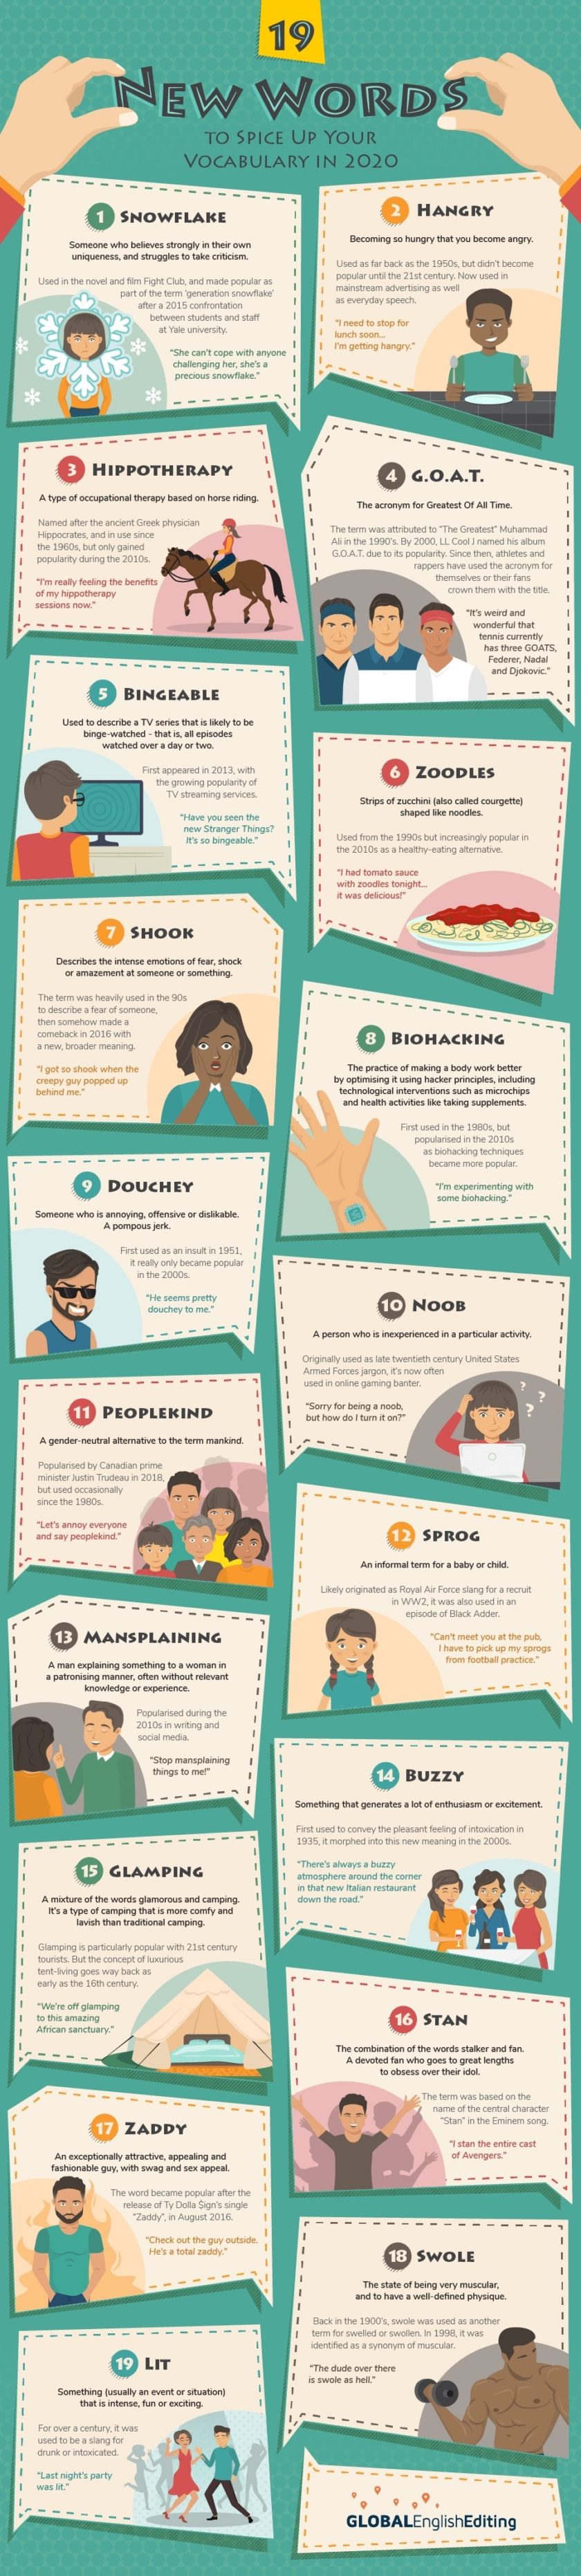 New and trendy words to use more often this year - full size infographic